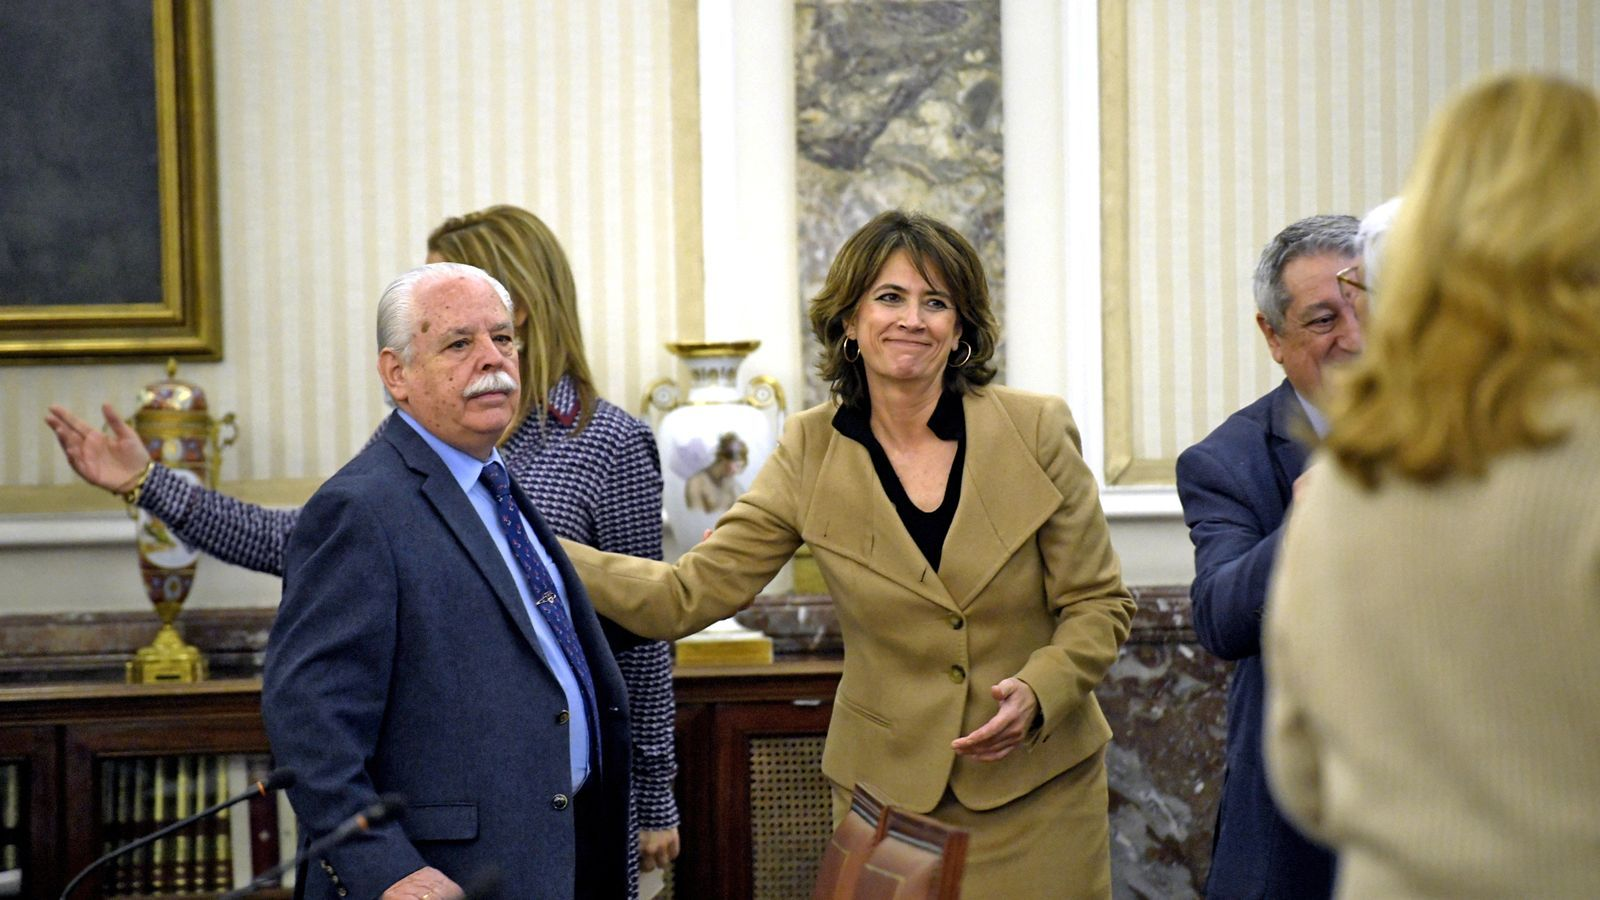 Public Prosecutor to probe whether Navajas was pressured into accusing Spanish government over pandemic